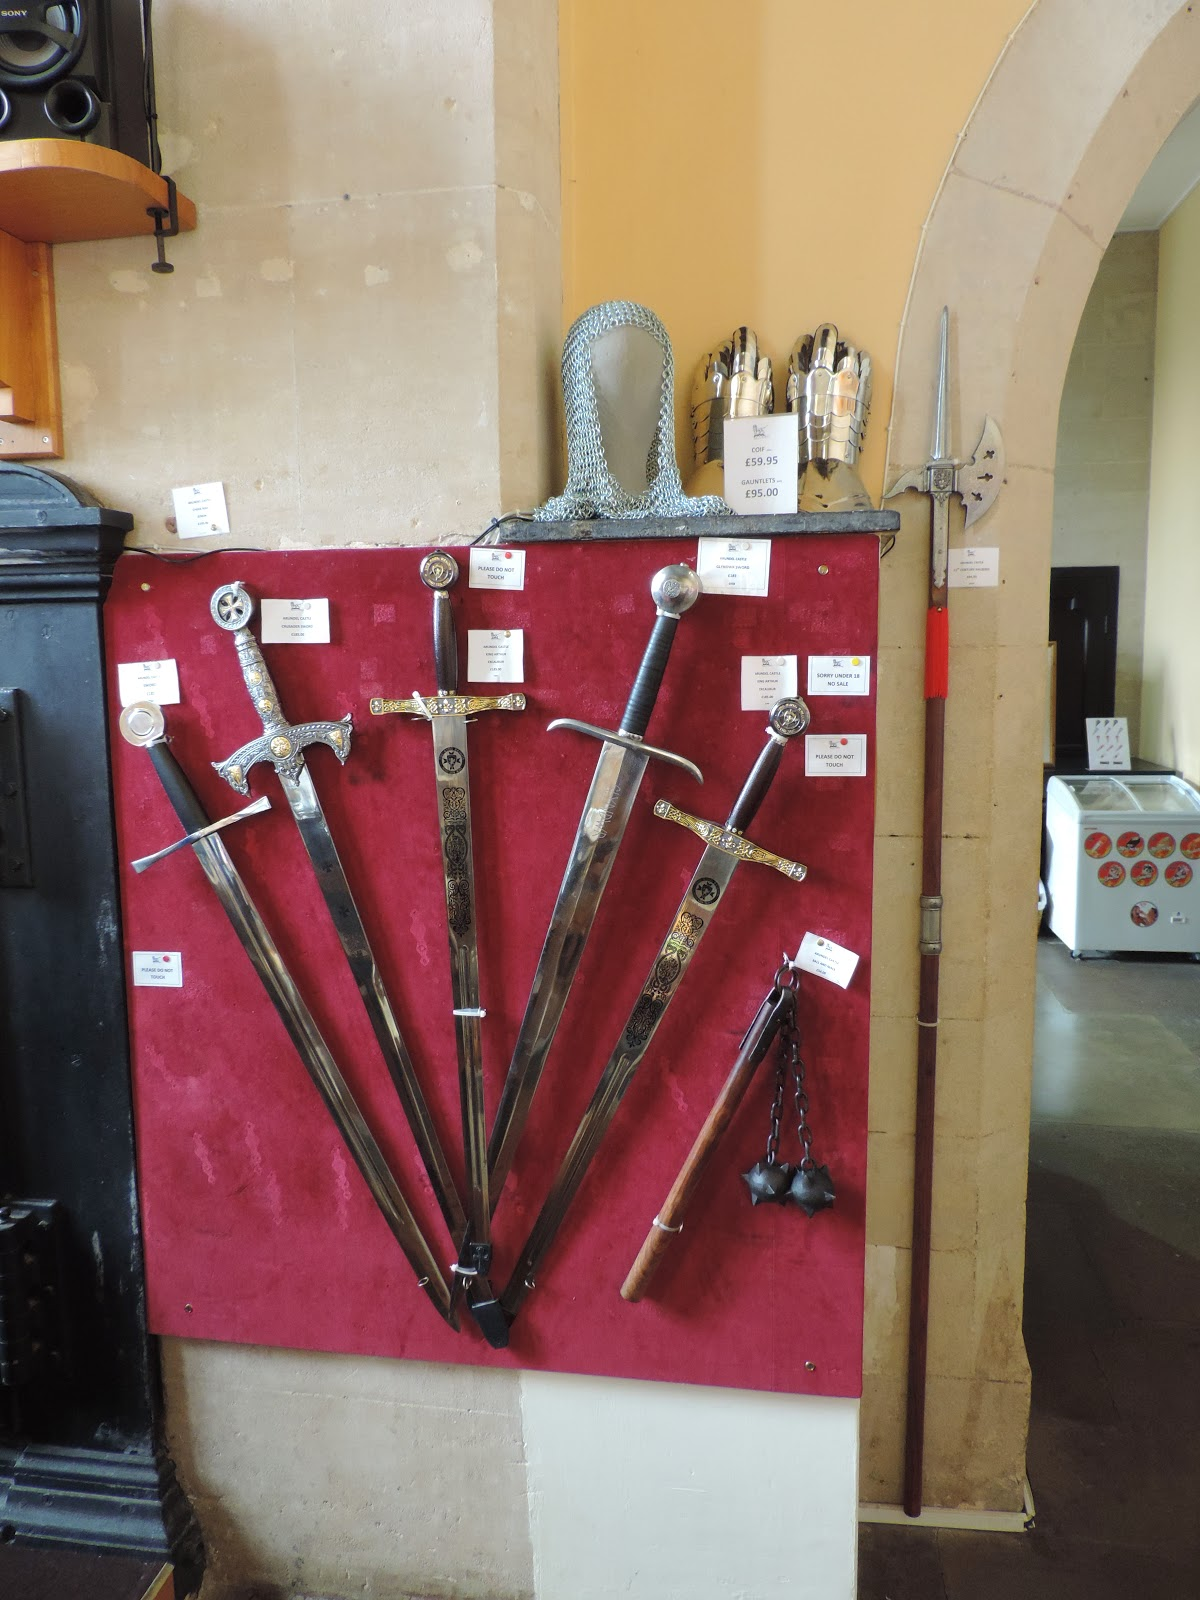 mace and medieval swords